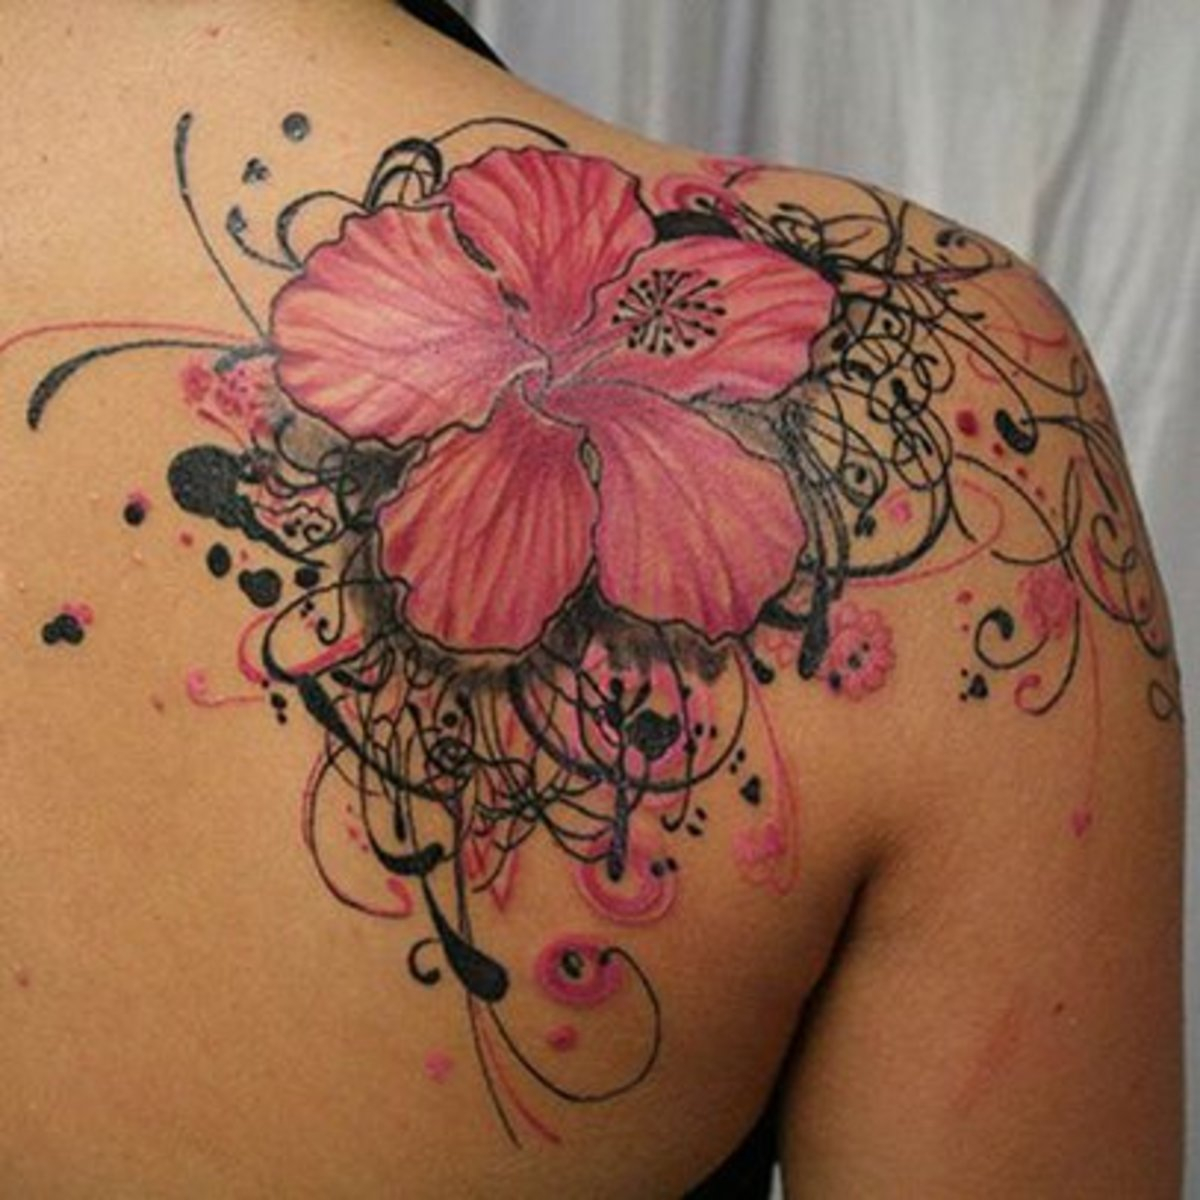 Feminine Shoulder Cap Tattoos Tattoo Ideas Artists And Models within dimensions 1200 X 1200